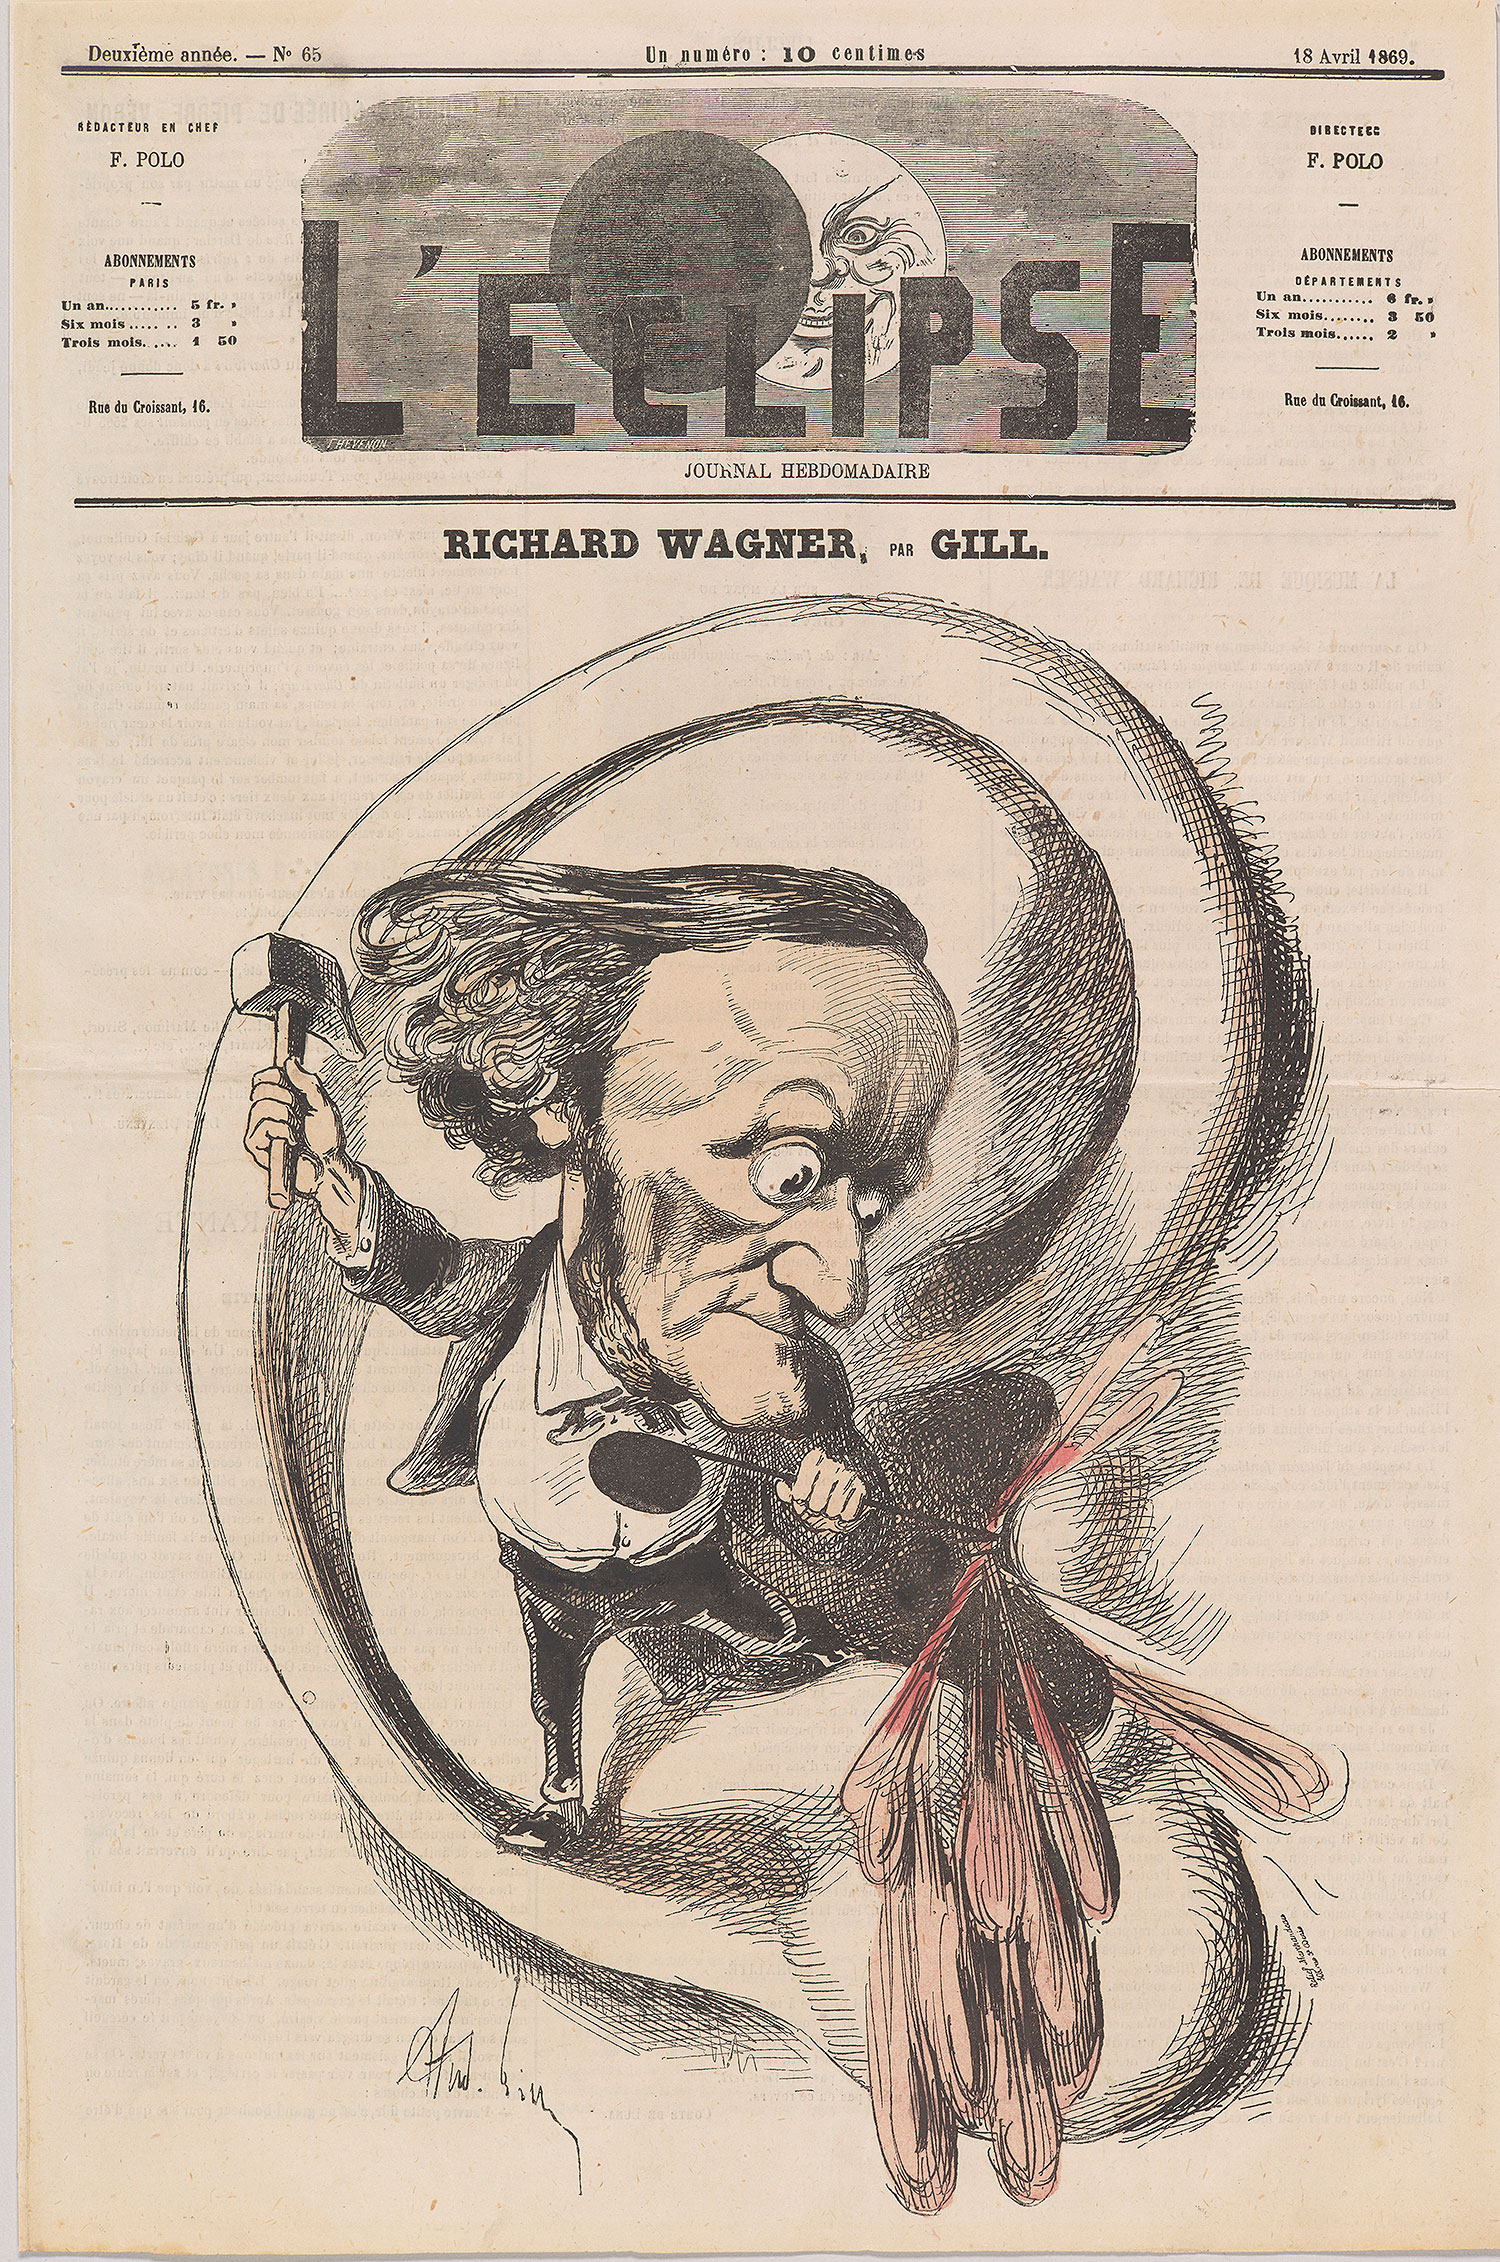 André Gill: Richard Wagner (caricature), L'Éclipse, April 18, 1869